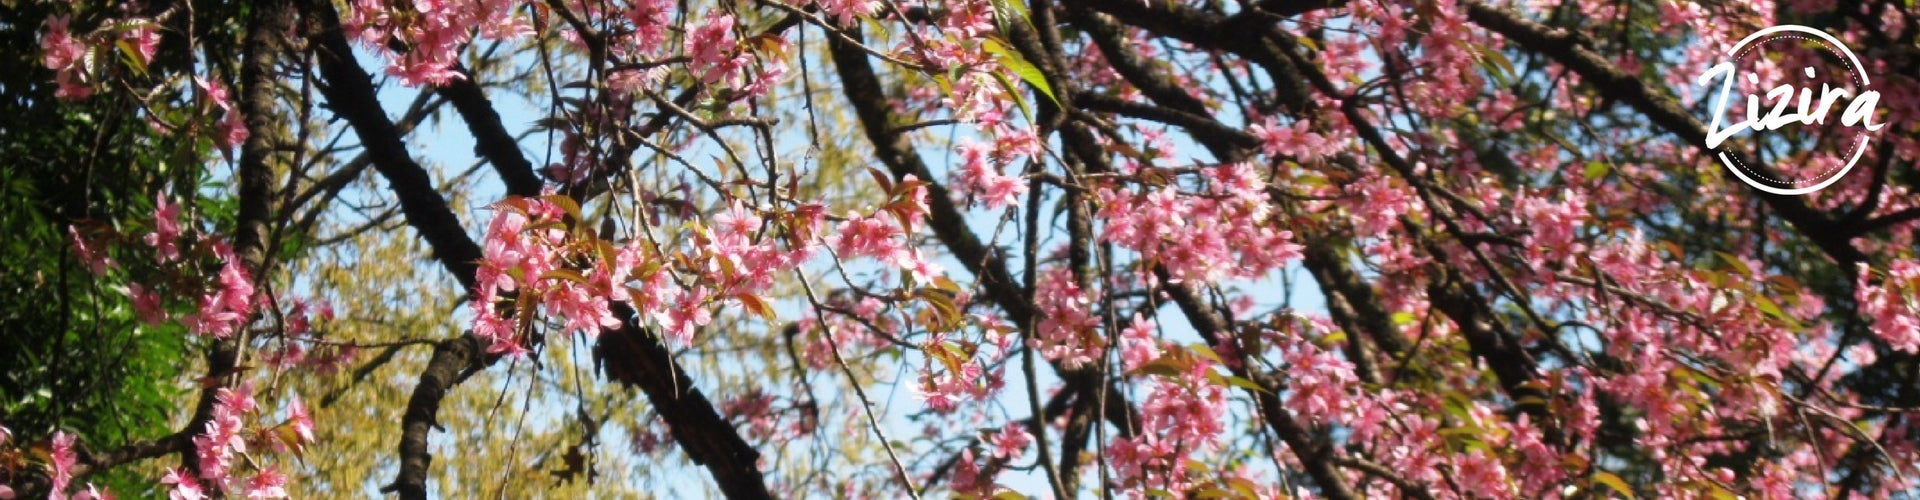 Cherry Blossom Festival in Meghalaya is one of the biggest festivals in the state | Zizira